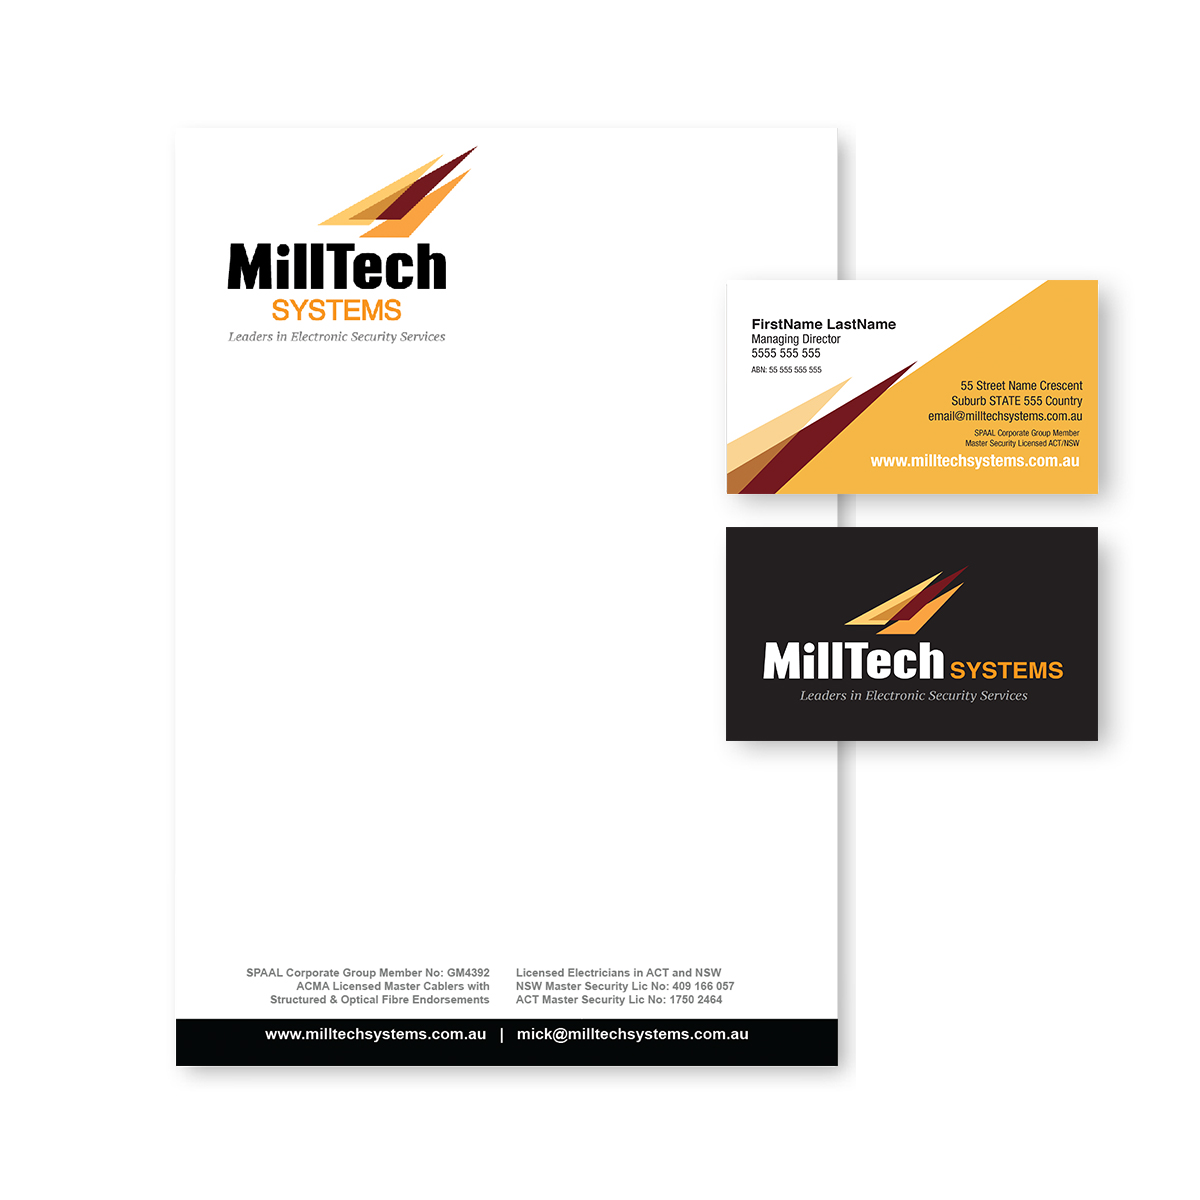 Milltech Stationery business cards and corporate stationary